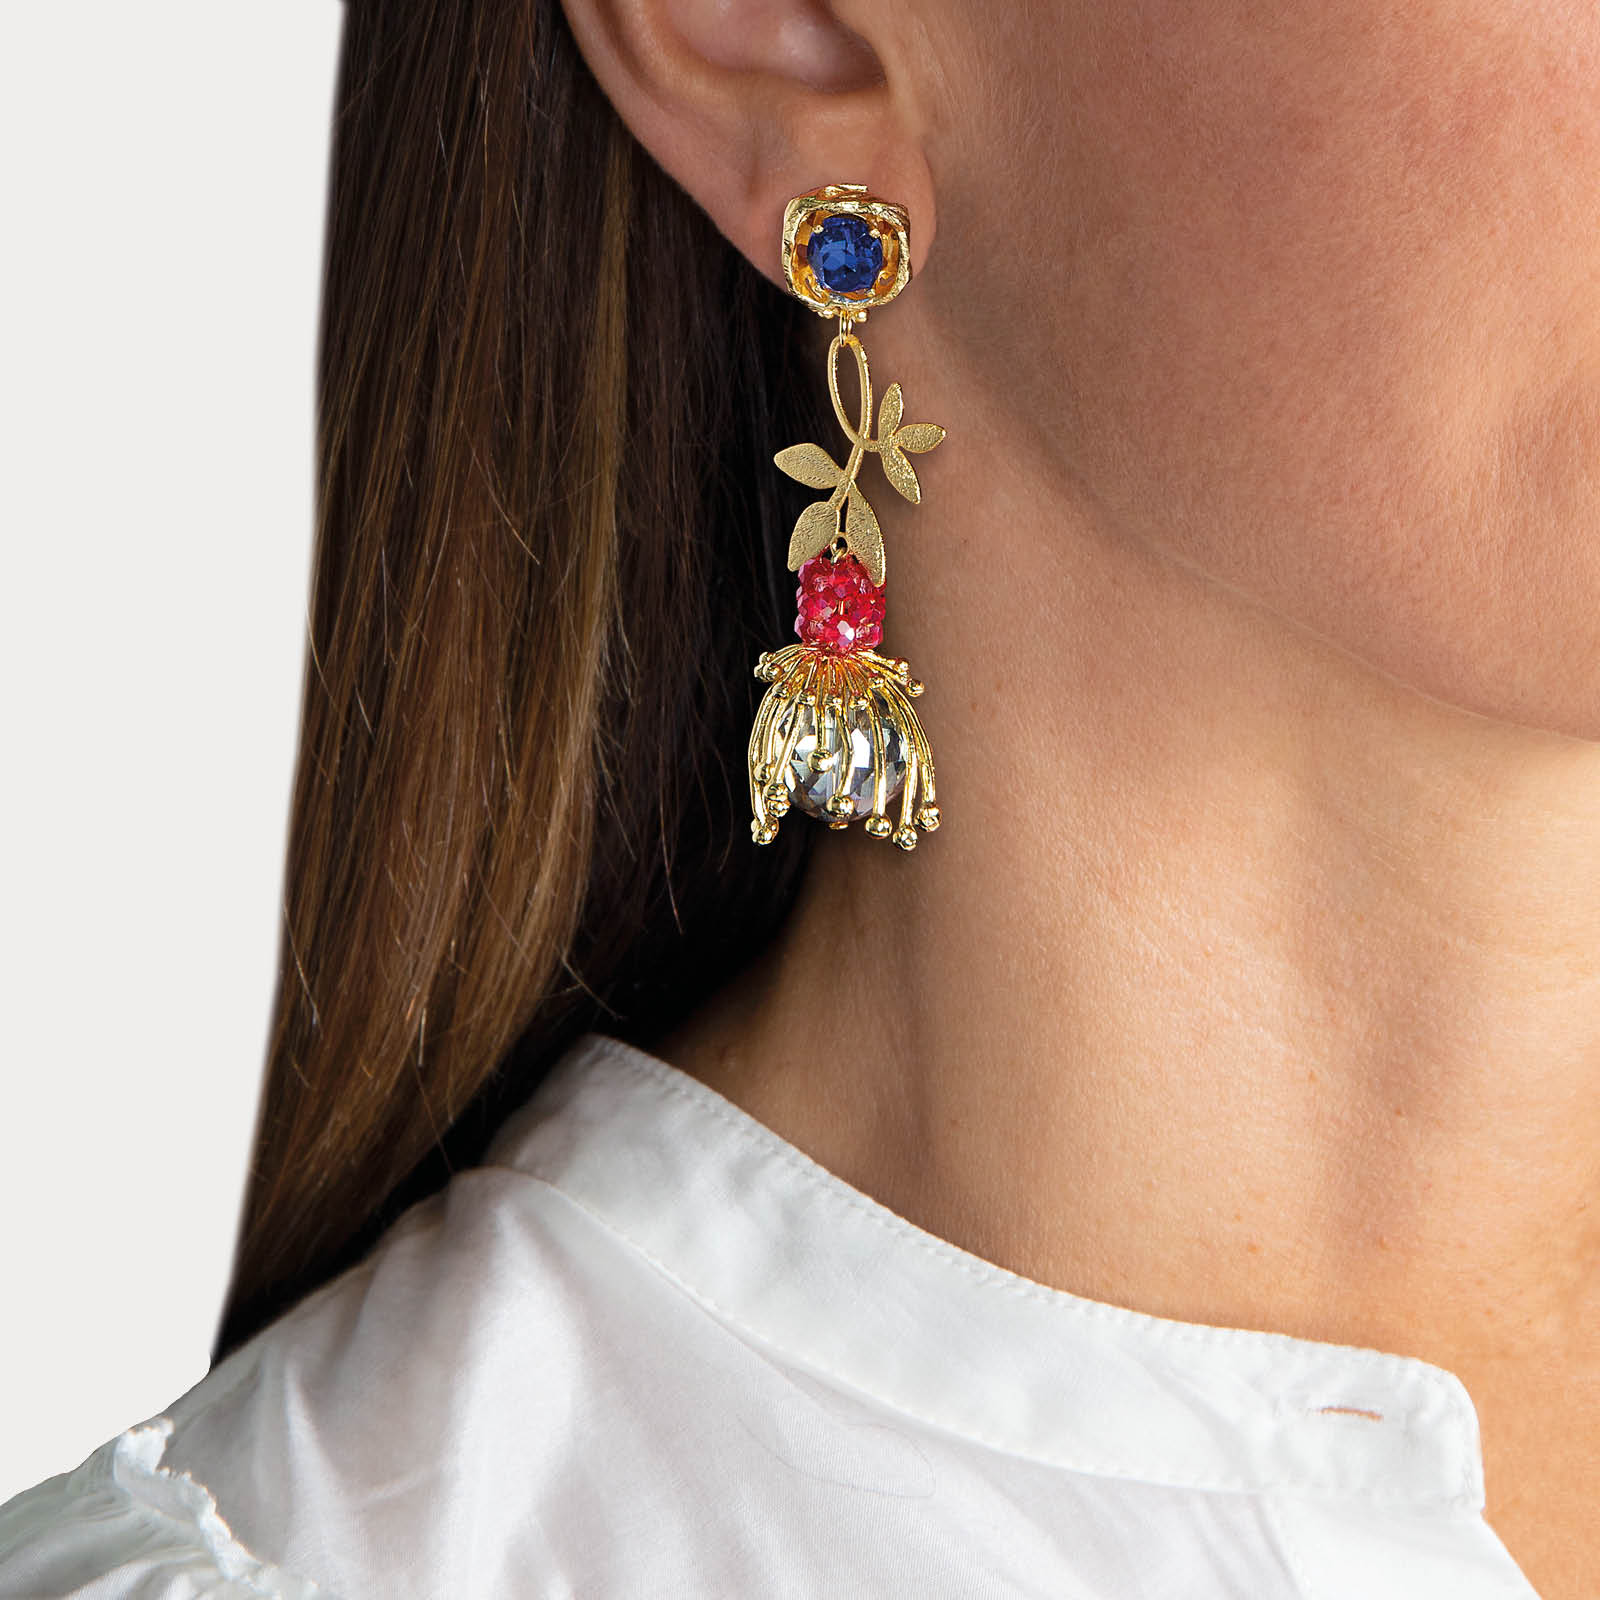 Hidden Flowers Blue Earrings